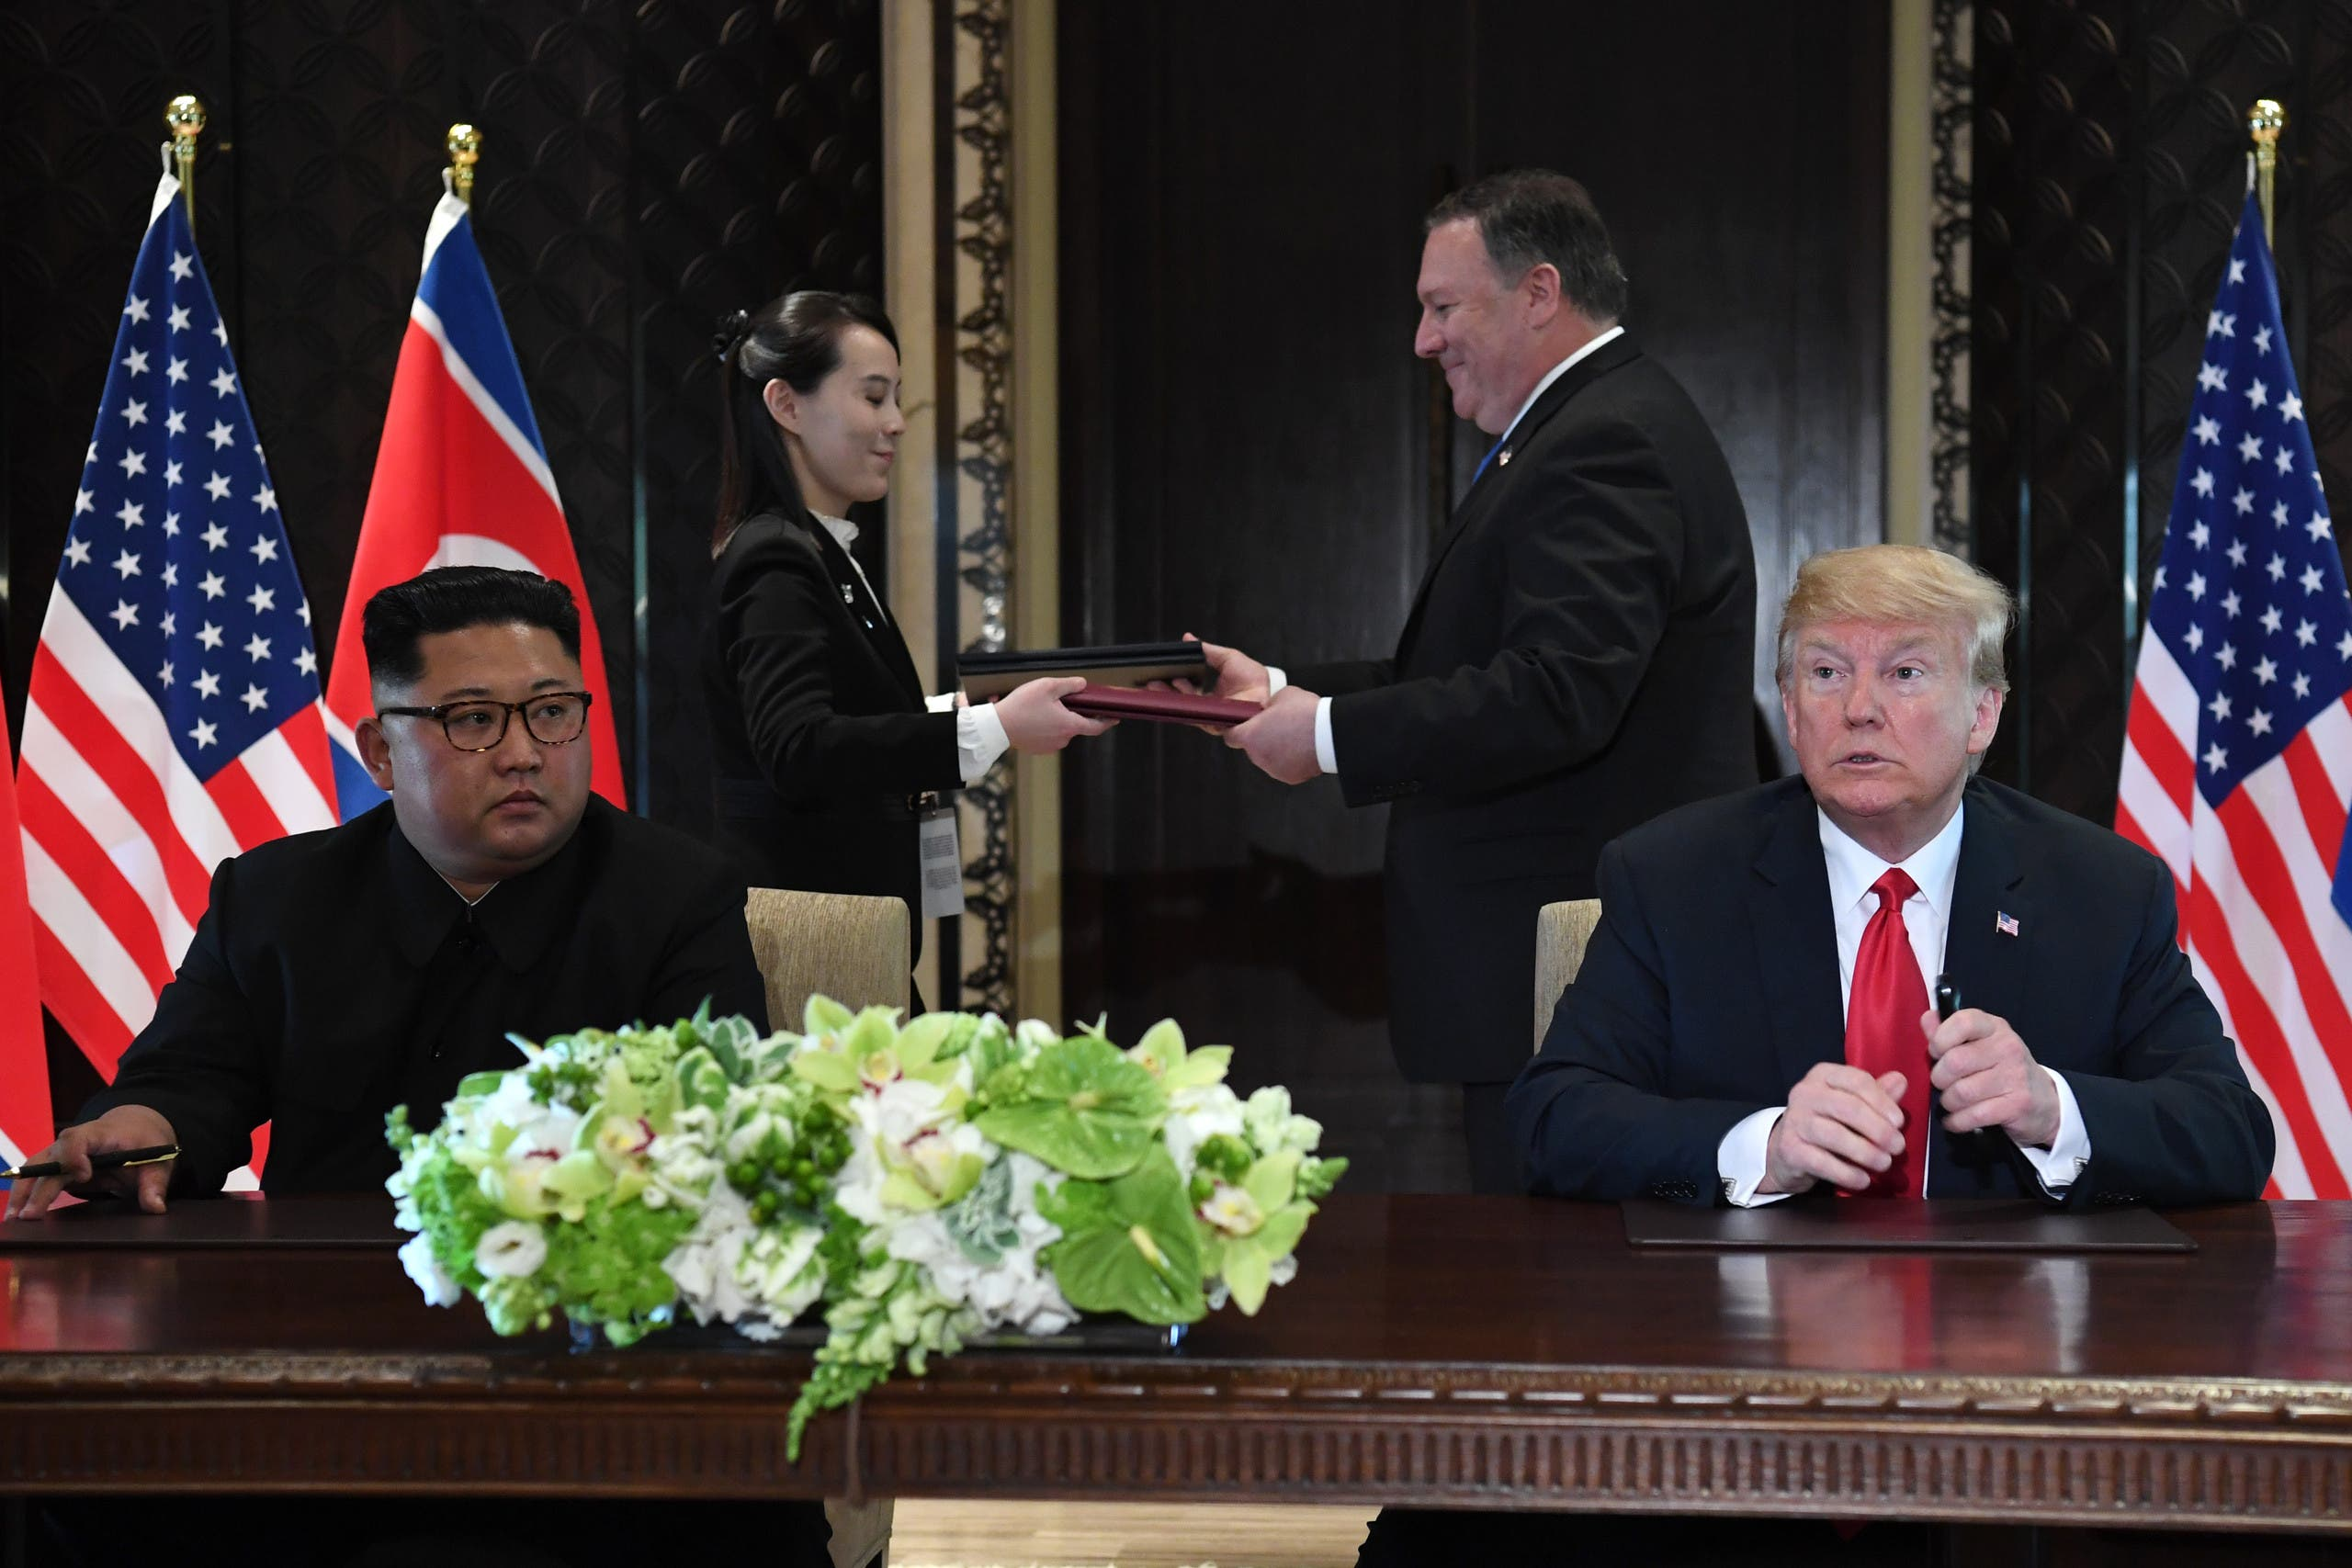 US President Donald Trump (R) and North Korea's leader Kim Jong Un (L) look on as documents are exchanged between US Secretary of State Mike Pompeo (2nd R) and the North Korean leader's sister Kim Yo Jong (2nd L) at a signing ceremony during their historic US-North Korea summit, at the Capella Hotel on Sentosa island in Singapore on June 12, 2018. (AFP)